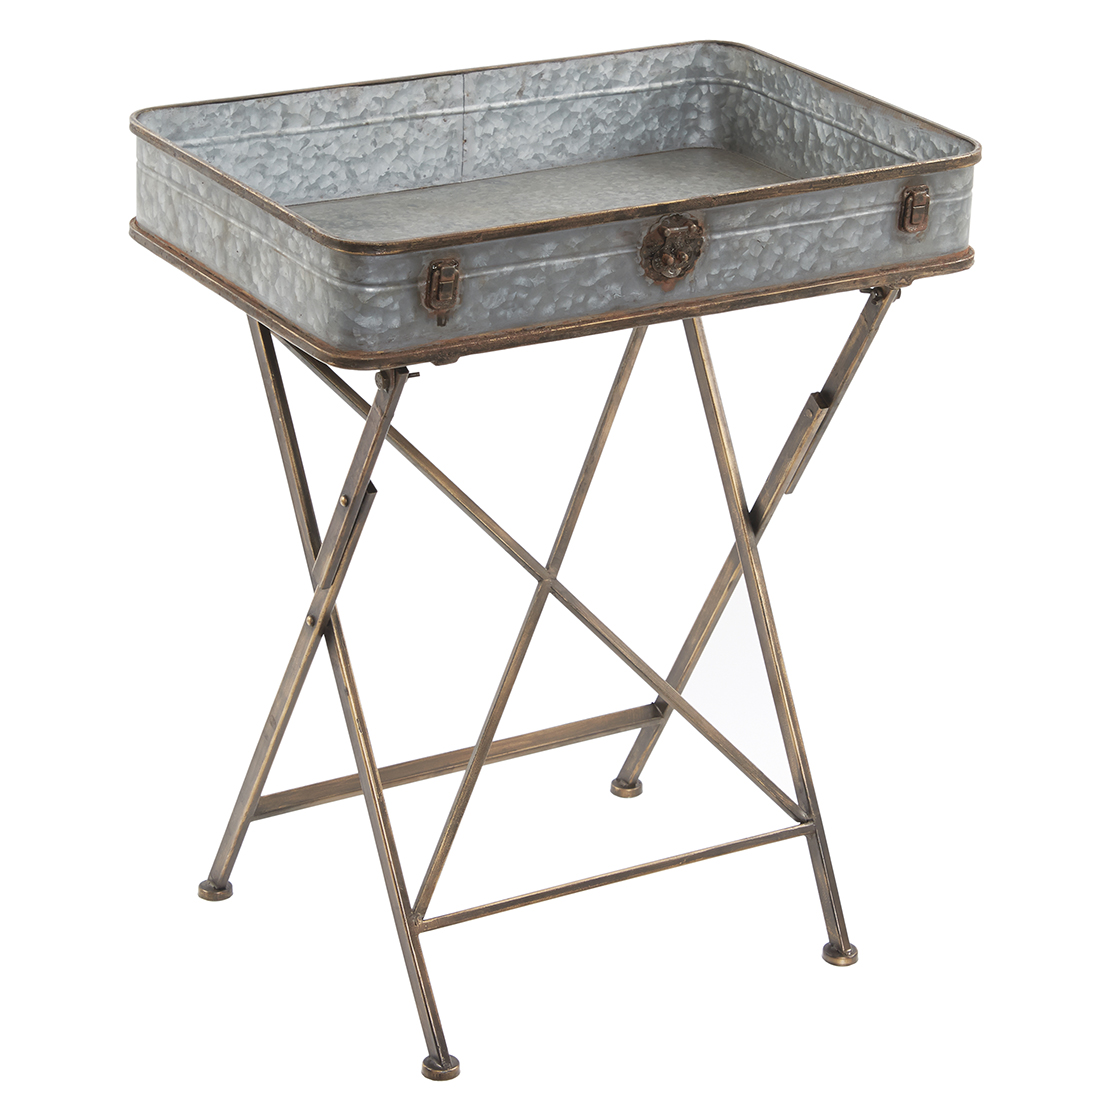 em_home-tobs-metal-grey suitcase-table-tray-homeware-home-decor-24281